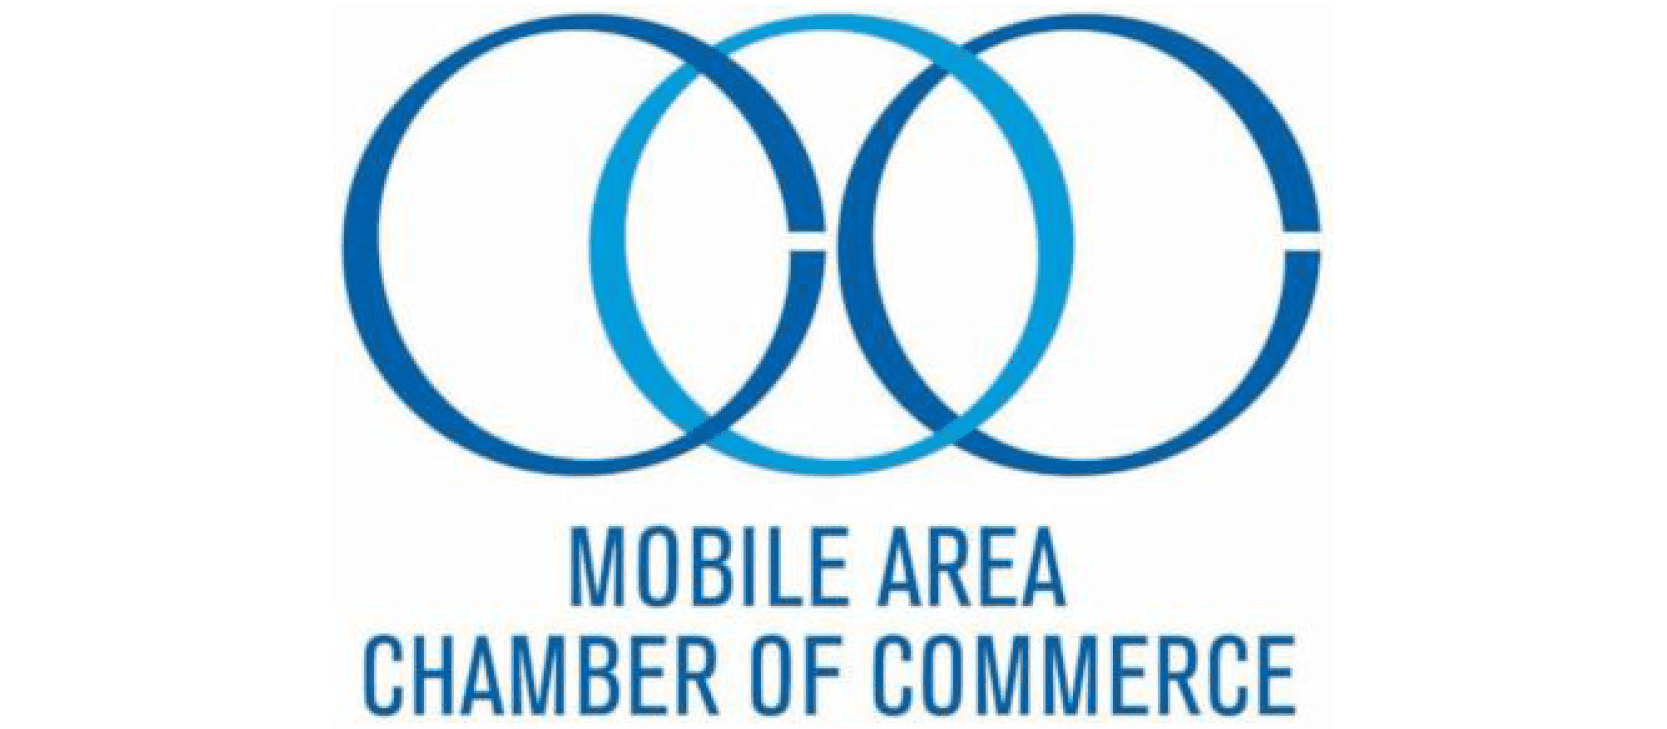 Cypress Employment Mobile Area Chamber of Commerce Affiliate